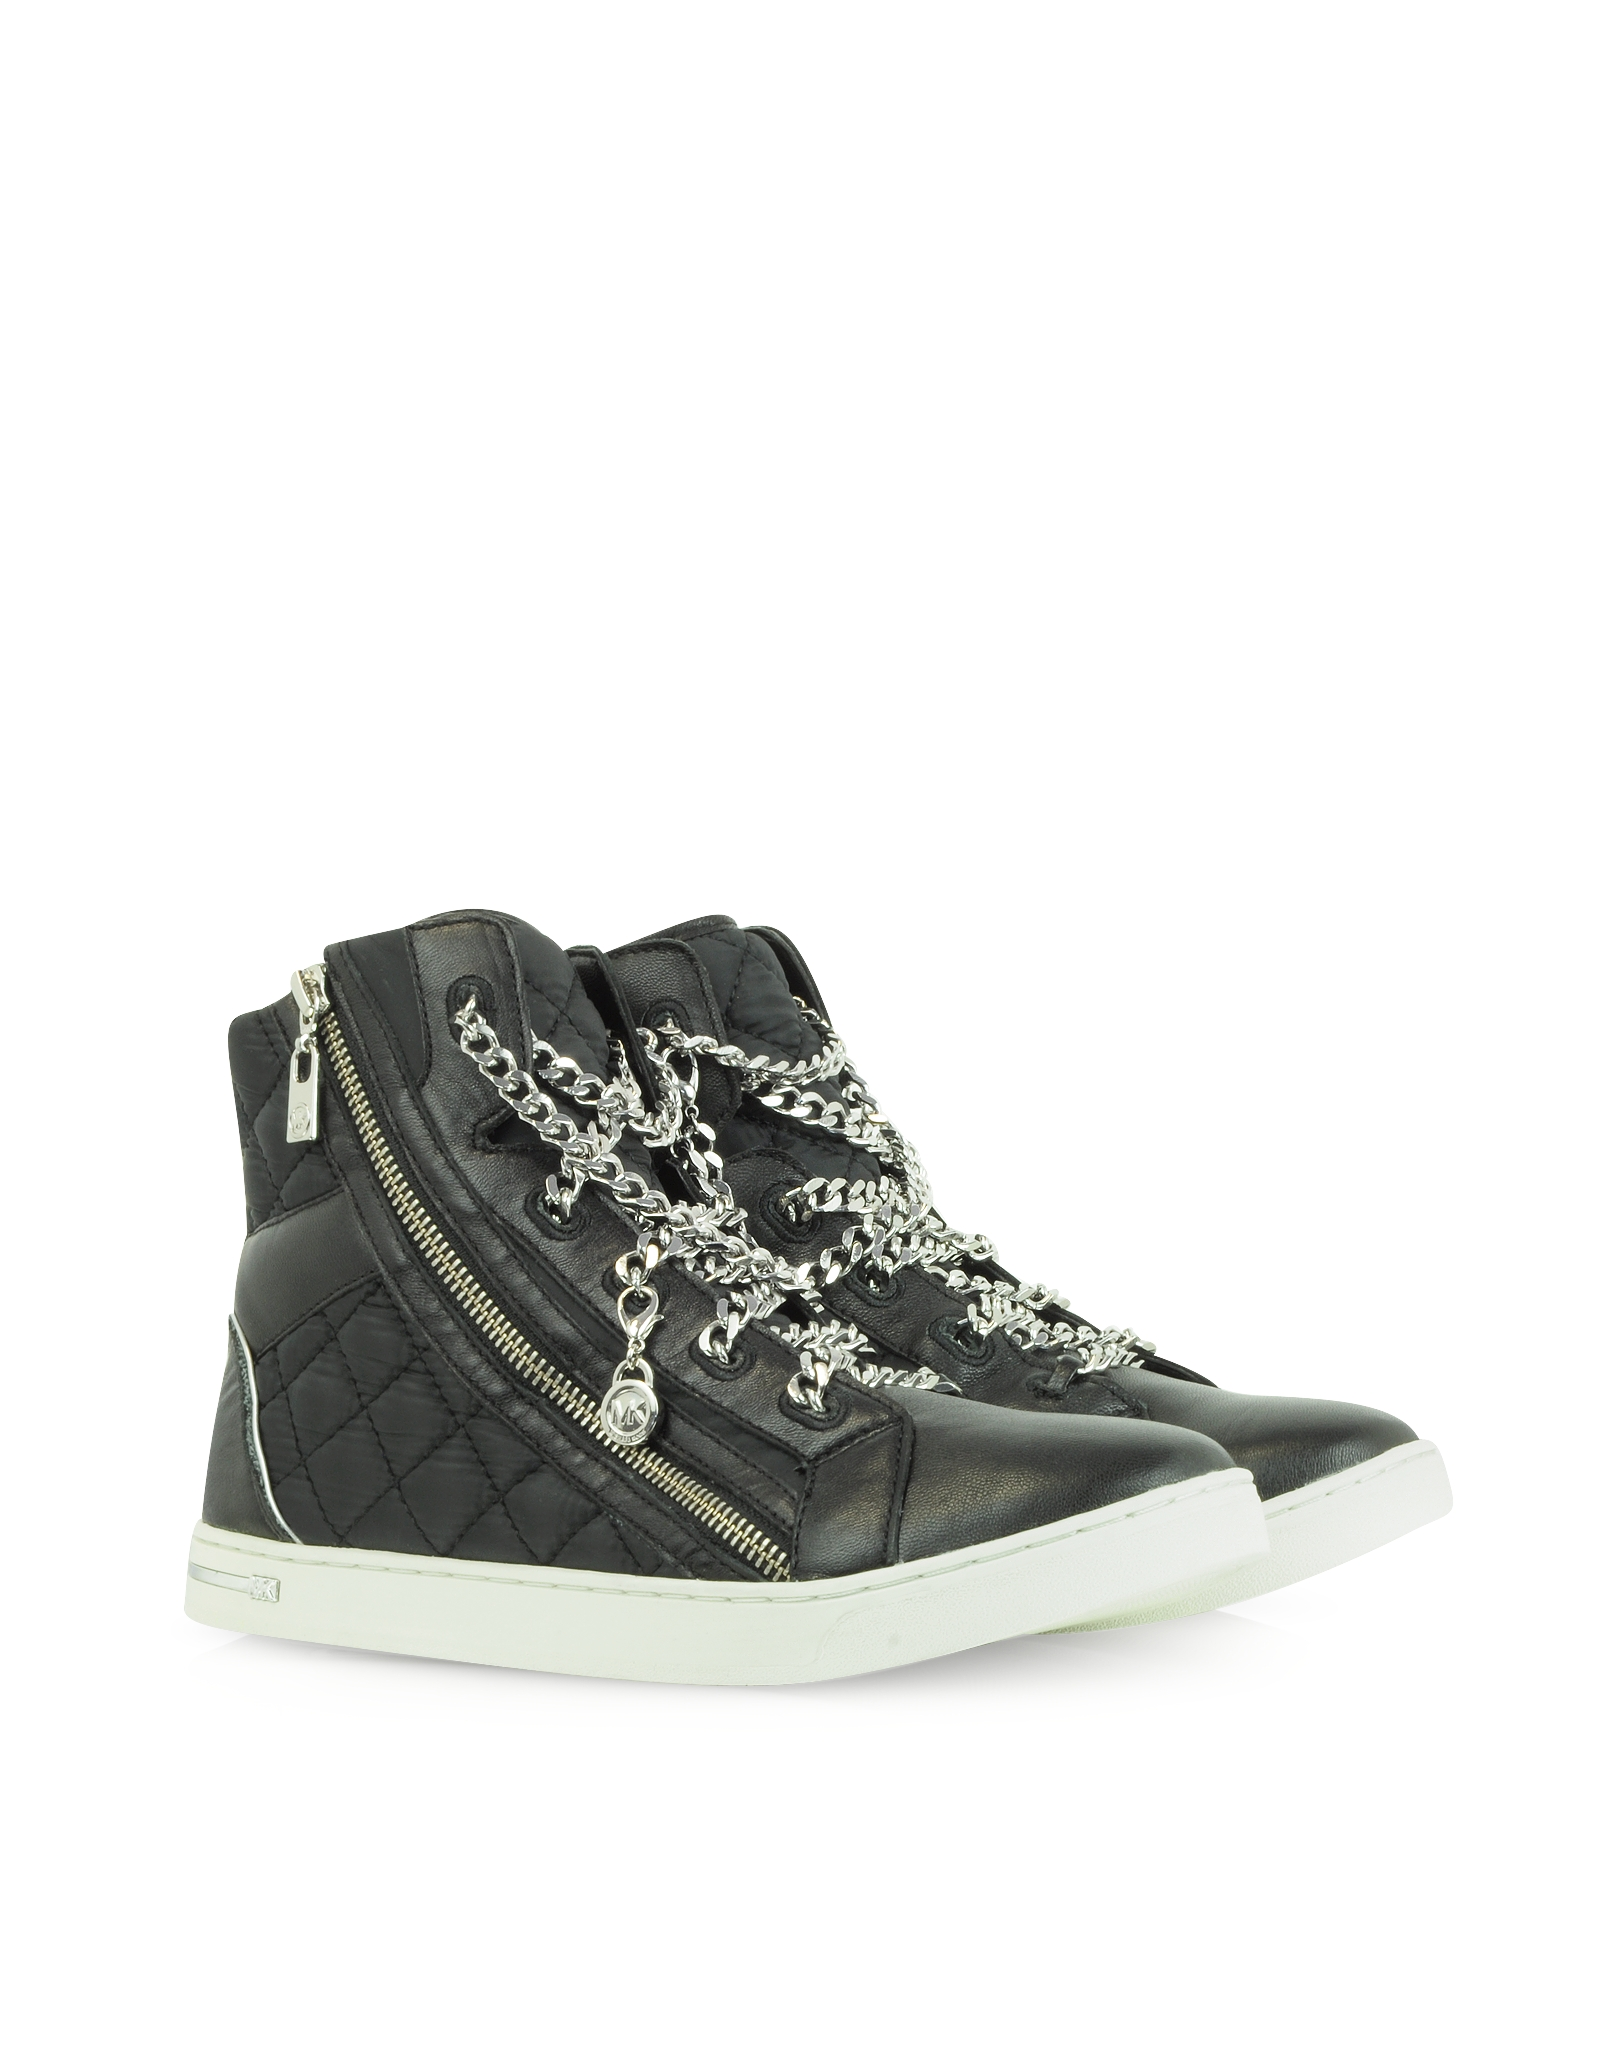 michael kors urban chain high top quilted nylon sneaker in black lyst. Black Bedroom Furniture Sets. Home Design Ideas